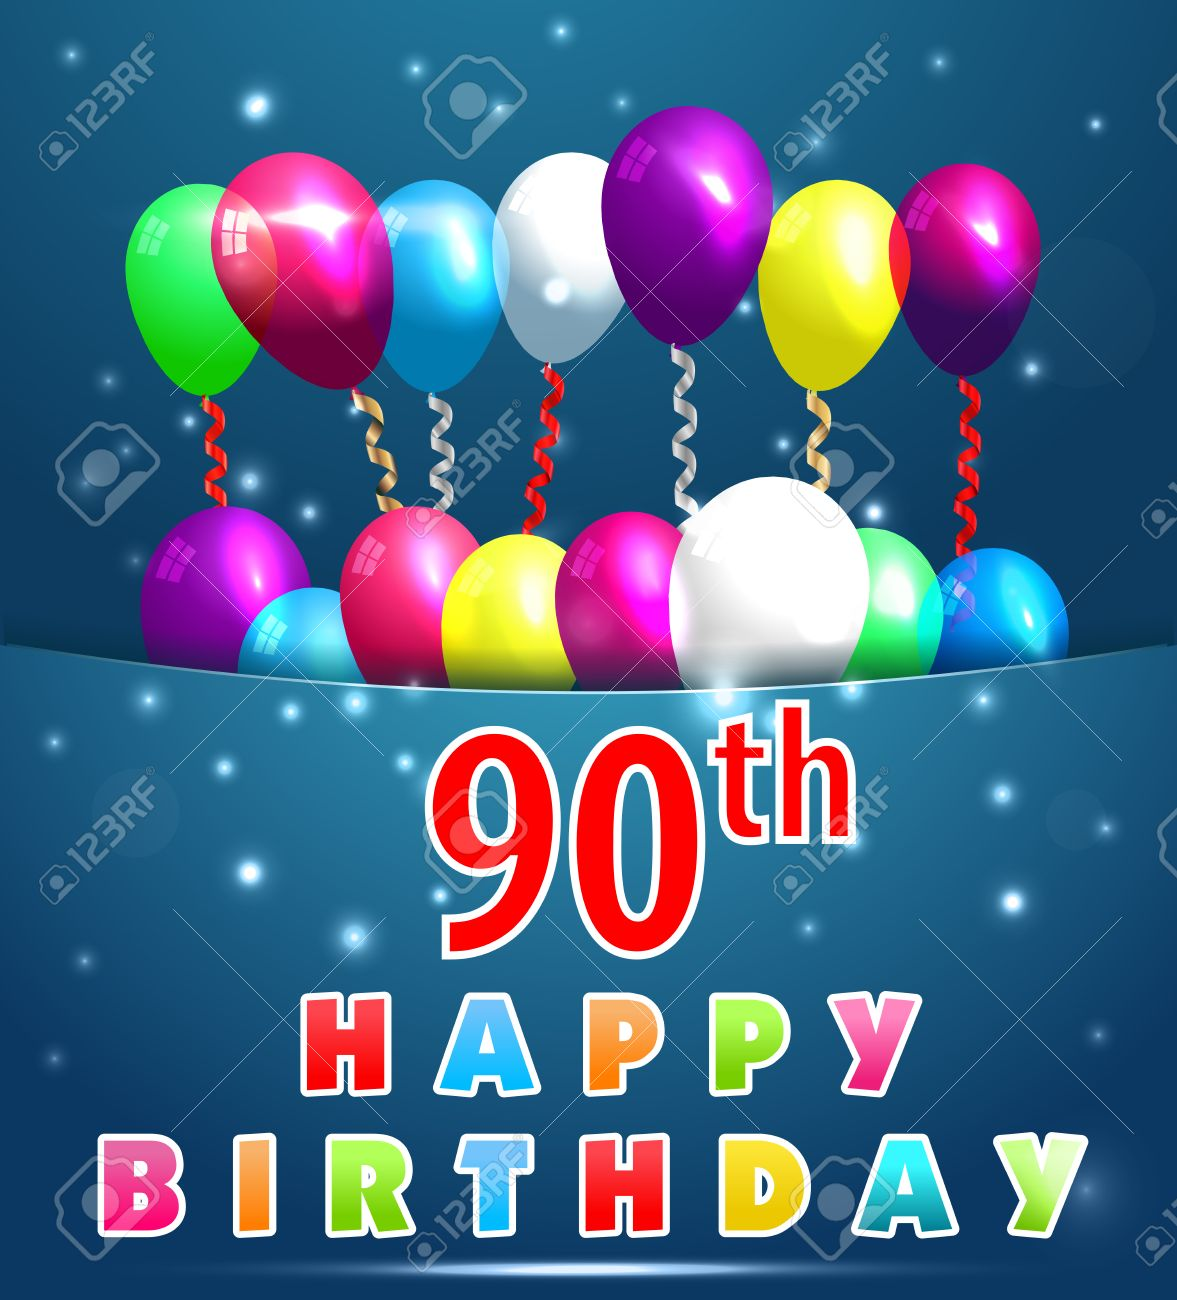 90 Year Happy Birthday Card With Balloons And Ribbons90th Stock Vector